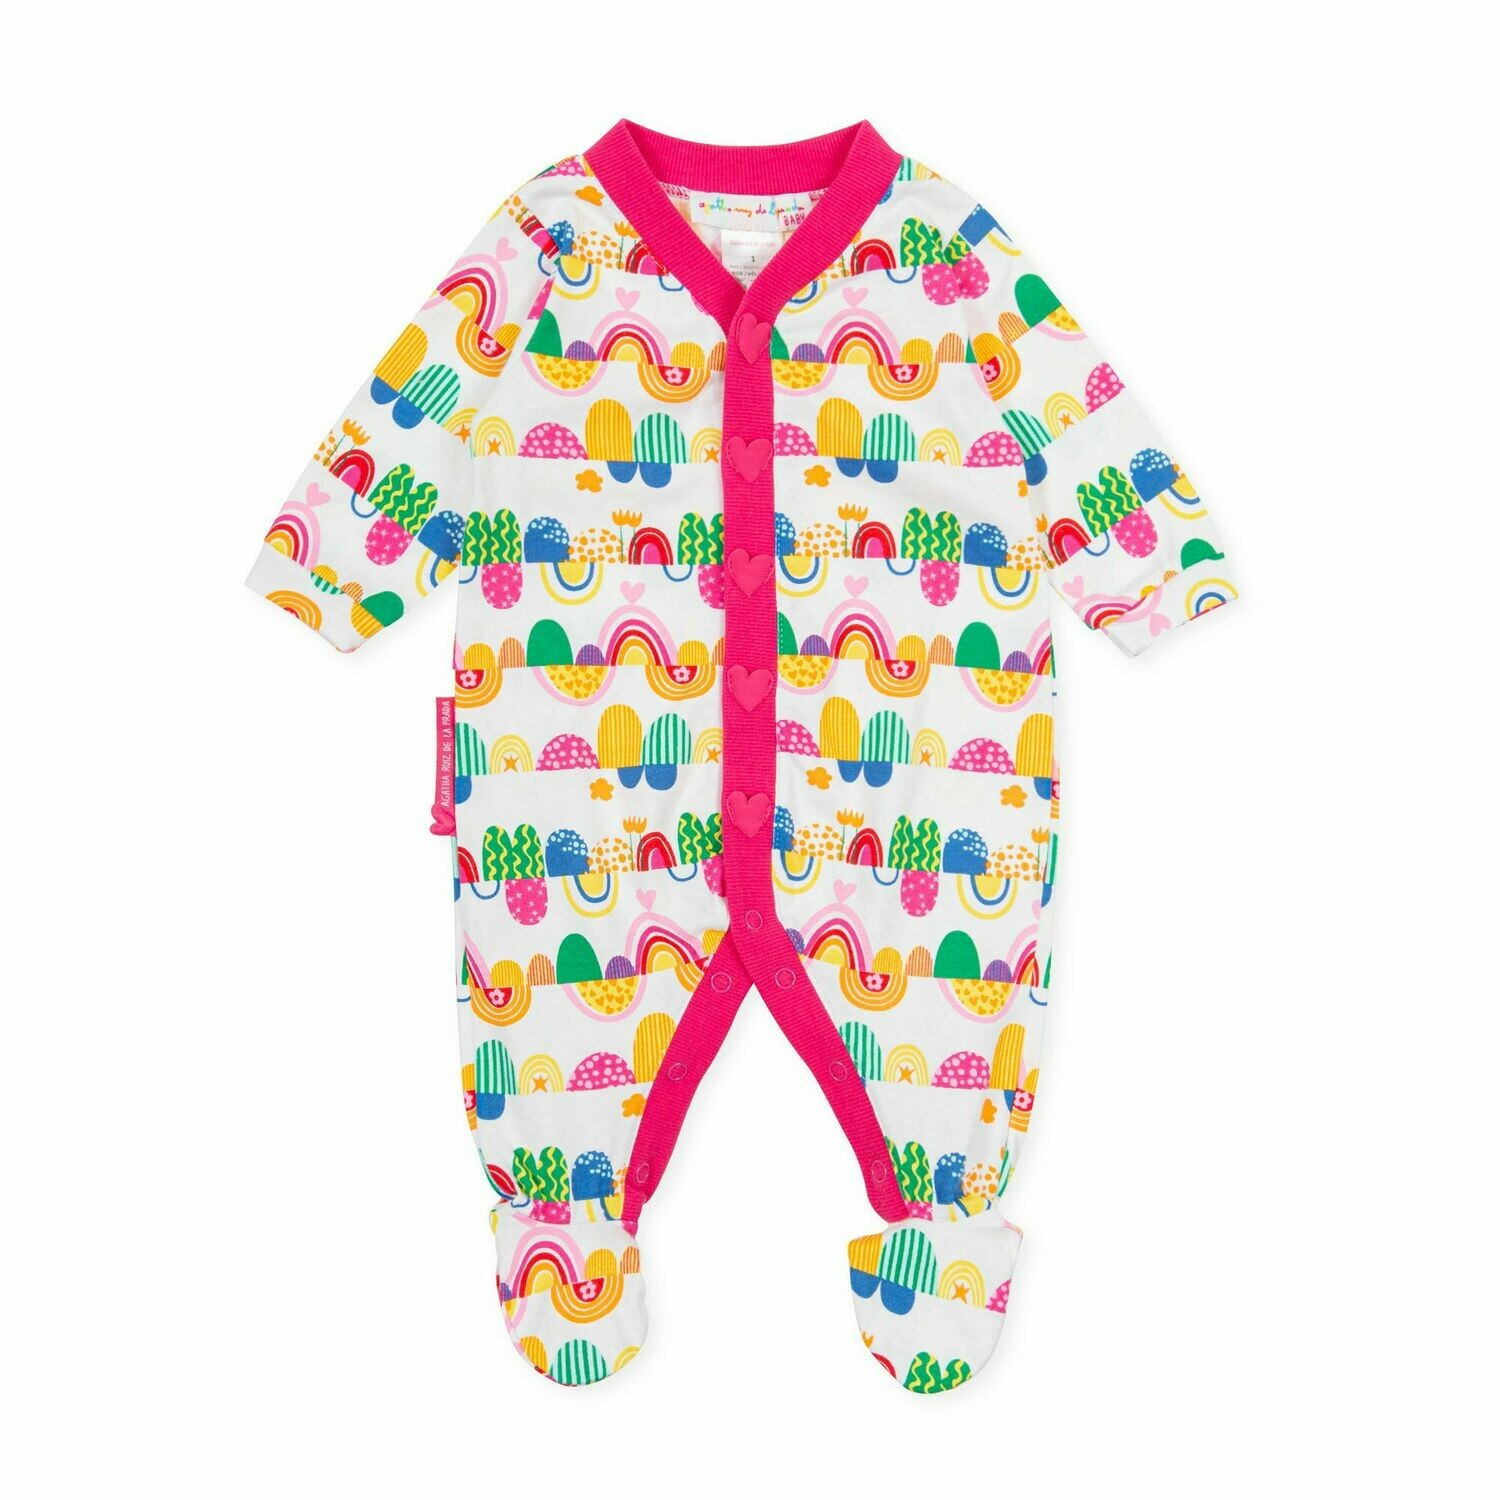 Agatha De La Ruiz Baby White & Pink  All in one Babygro